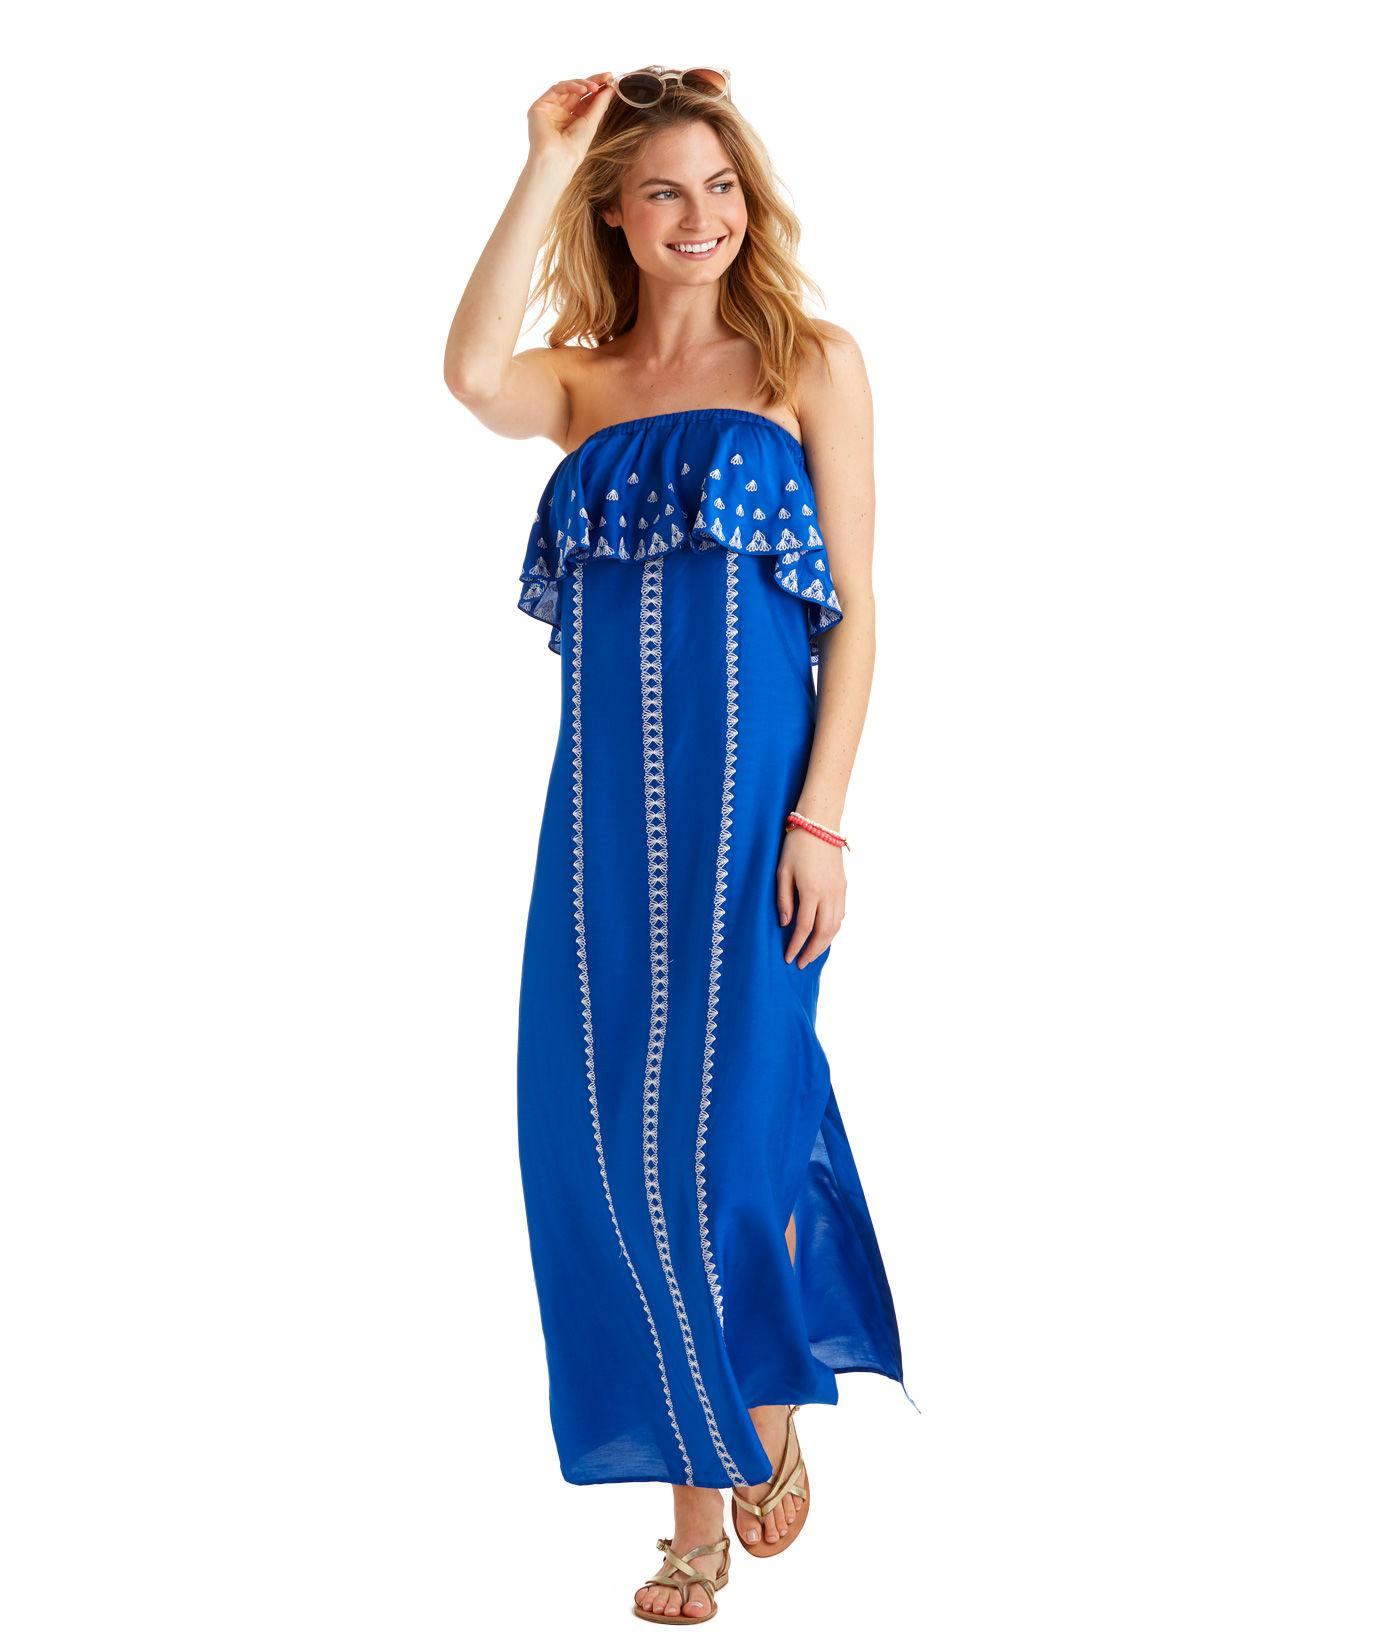 5052a6a48e Vineyard Vines Embroidered Maxi Dress in Blue - Lyst